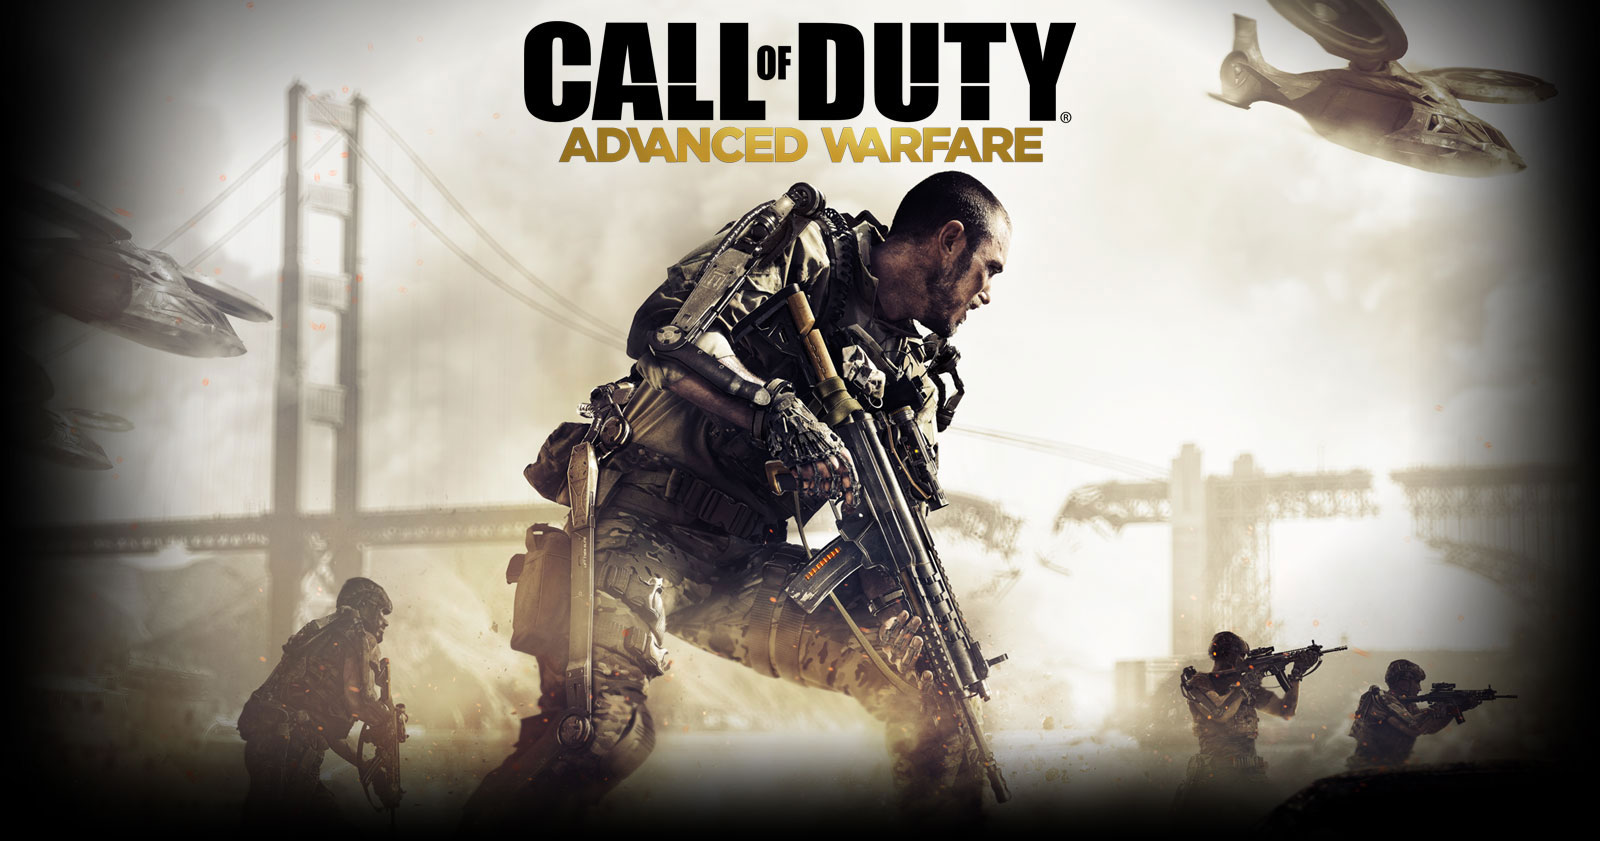 Call of Duty: Advanced Warfare for Xbox